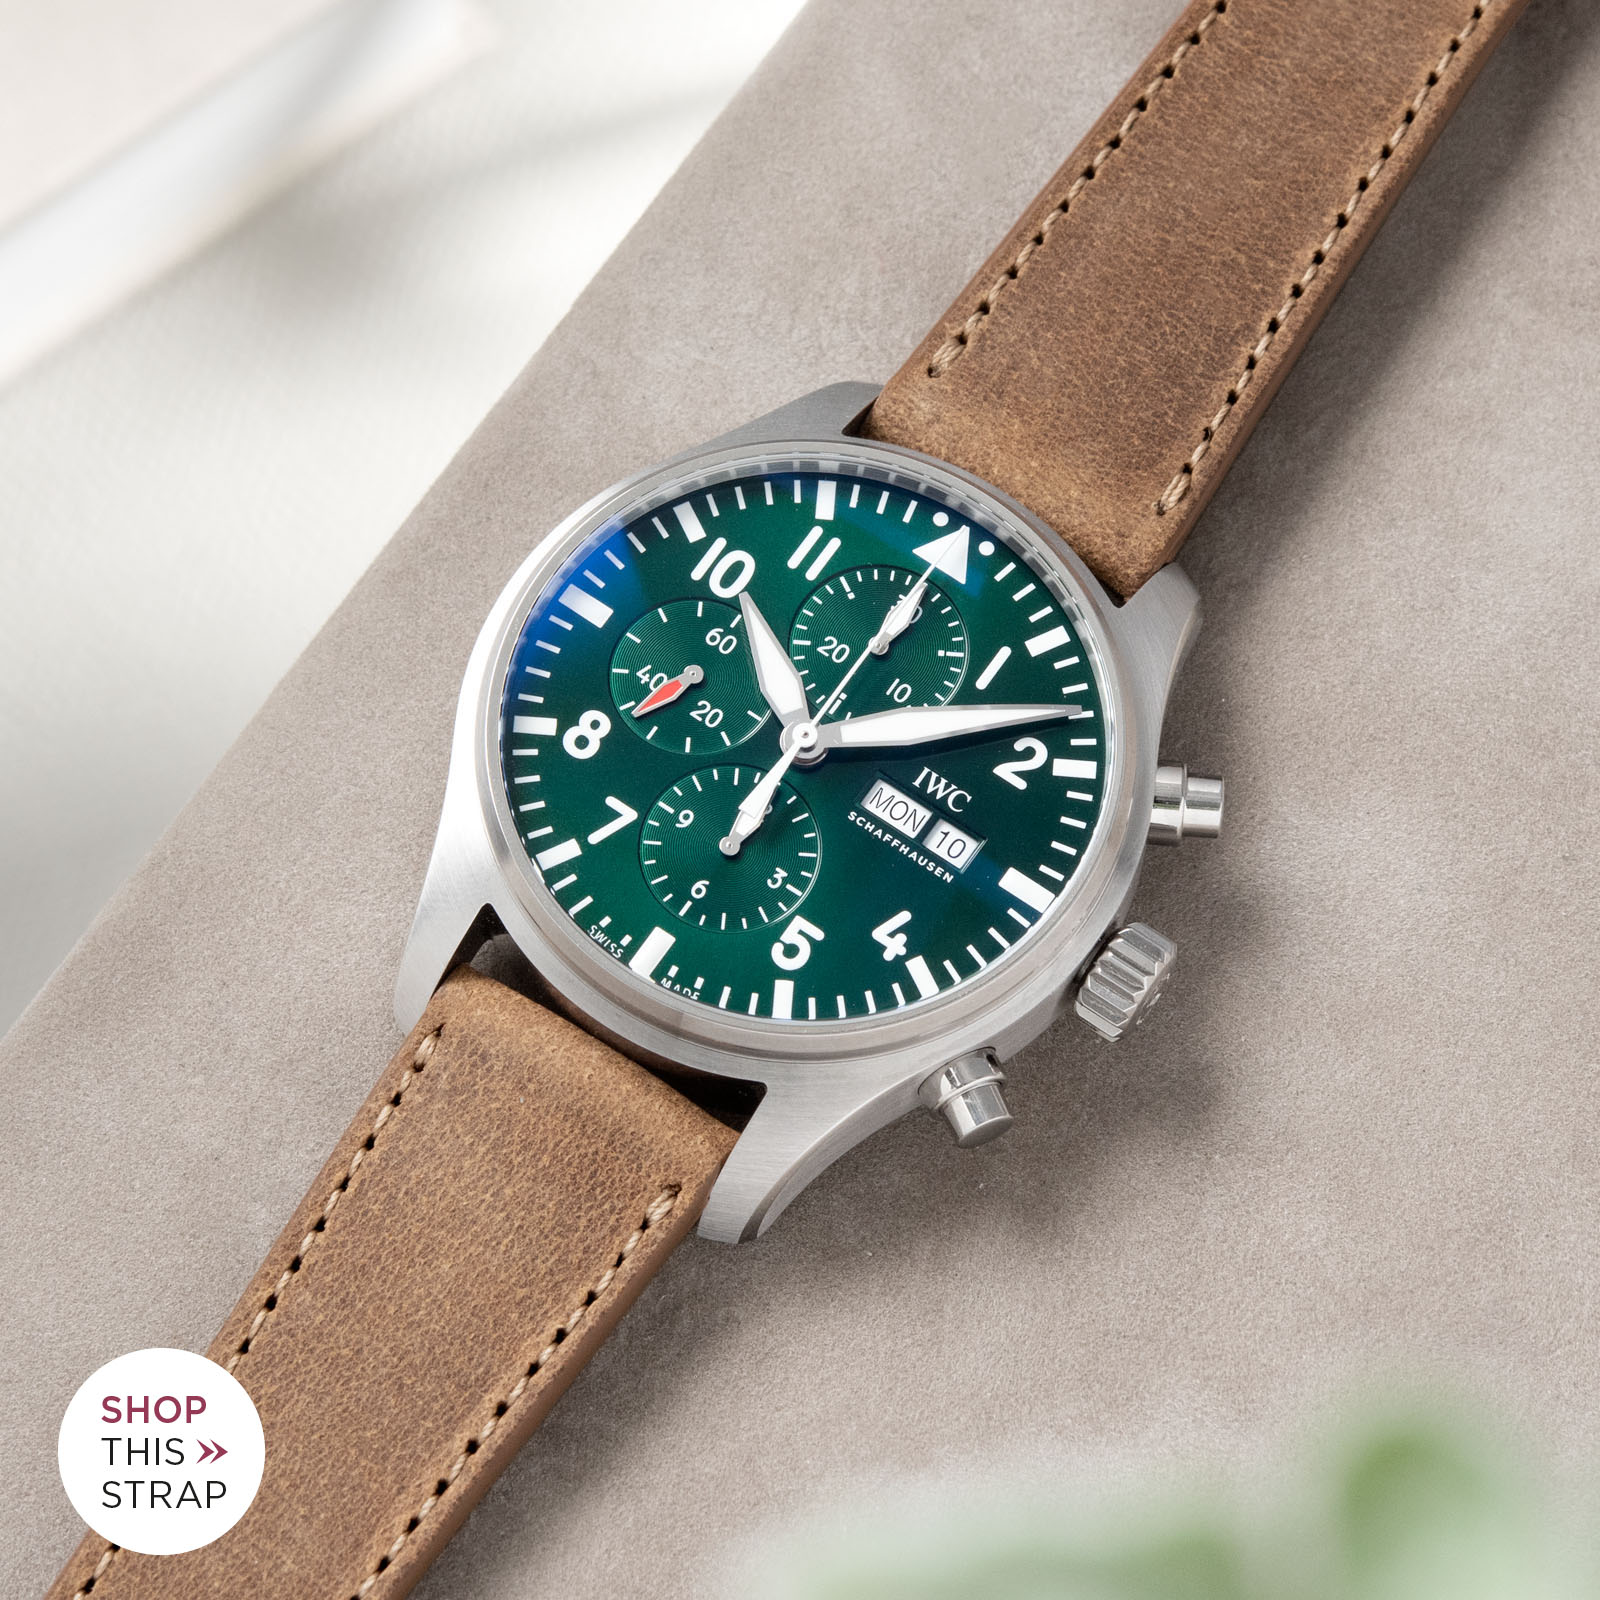 Bulang and Sons_Strapguide_IWC Pilots Watch Chronograph Spitfire_Cinnamon Brown Leather Watch Strap